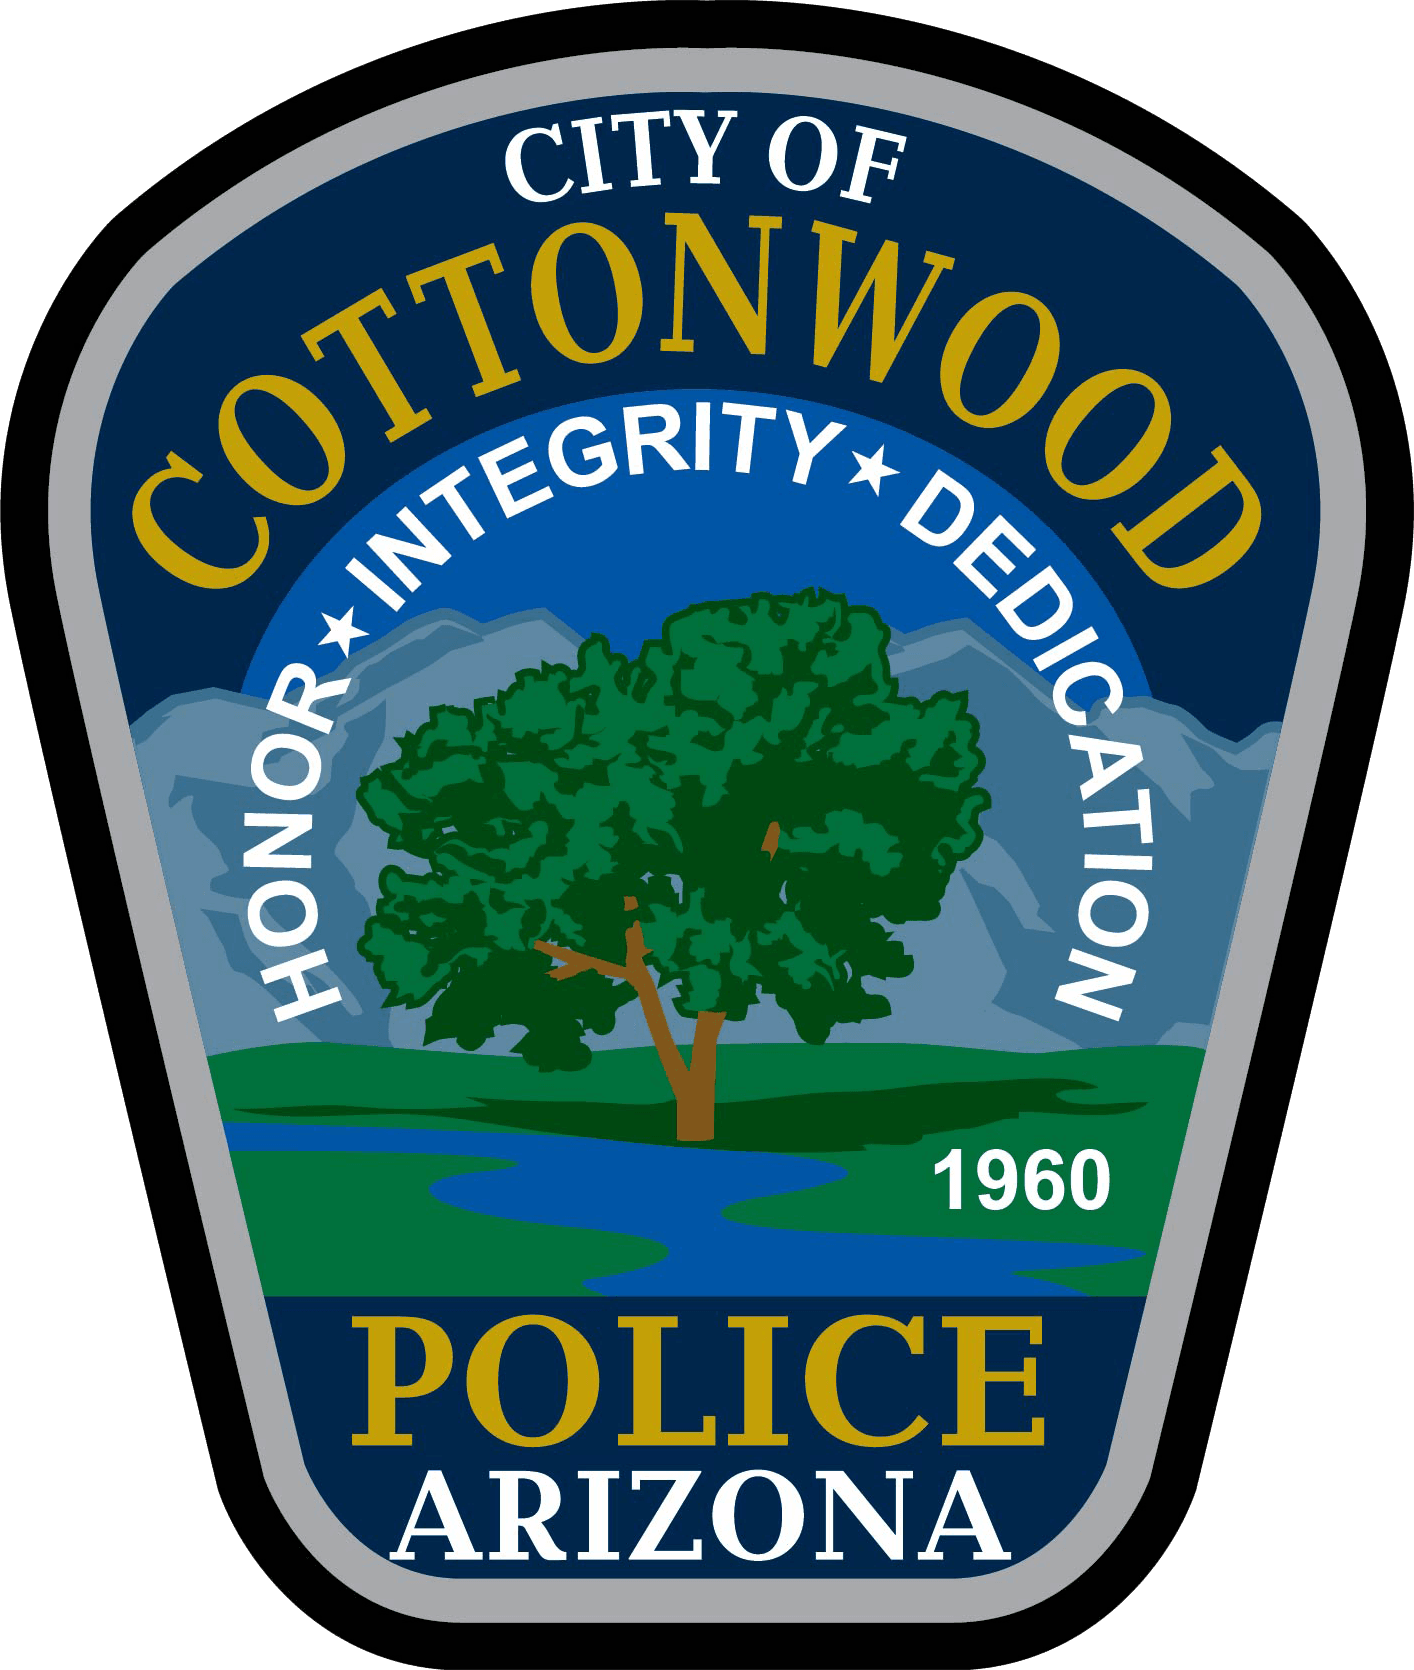 C-55547 Cottonwood PD Patch Arizona